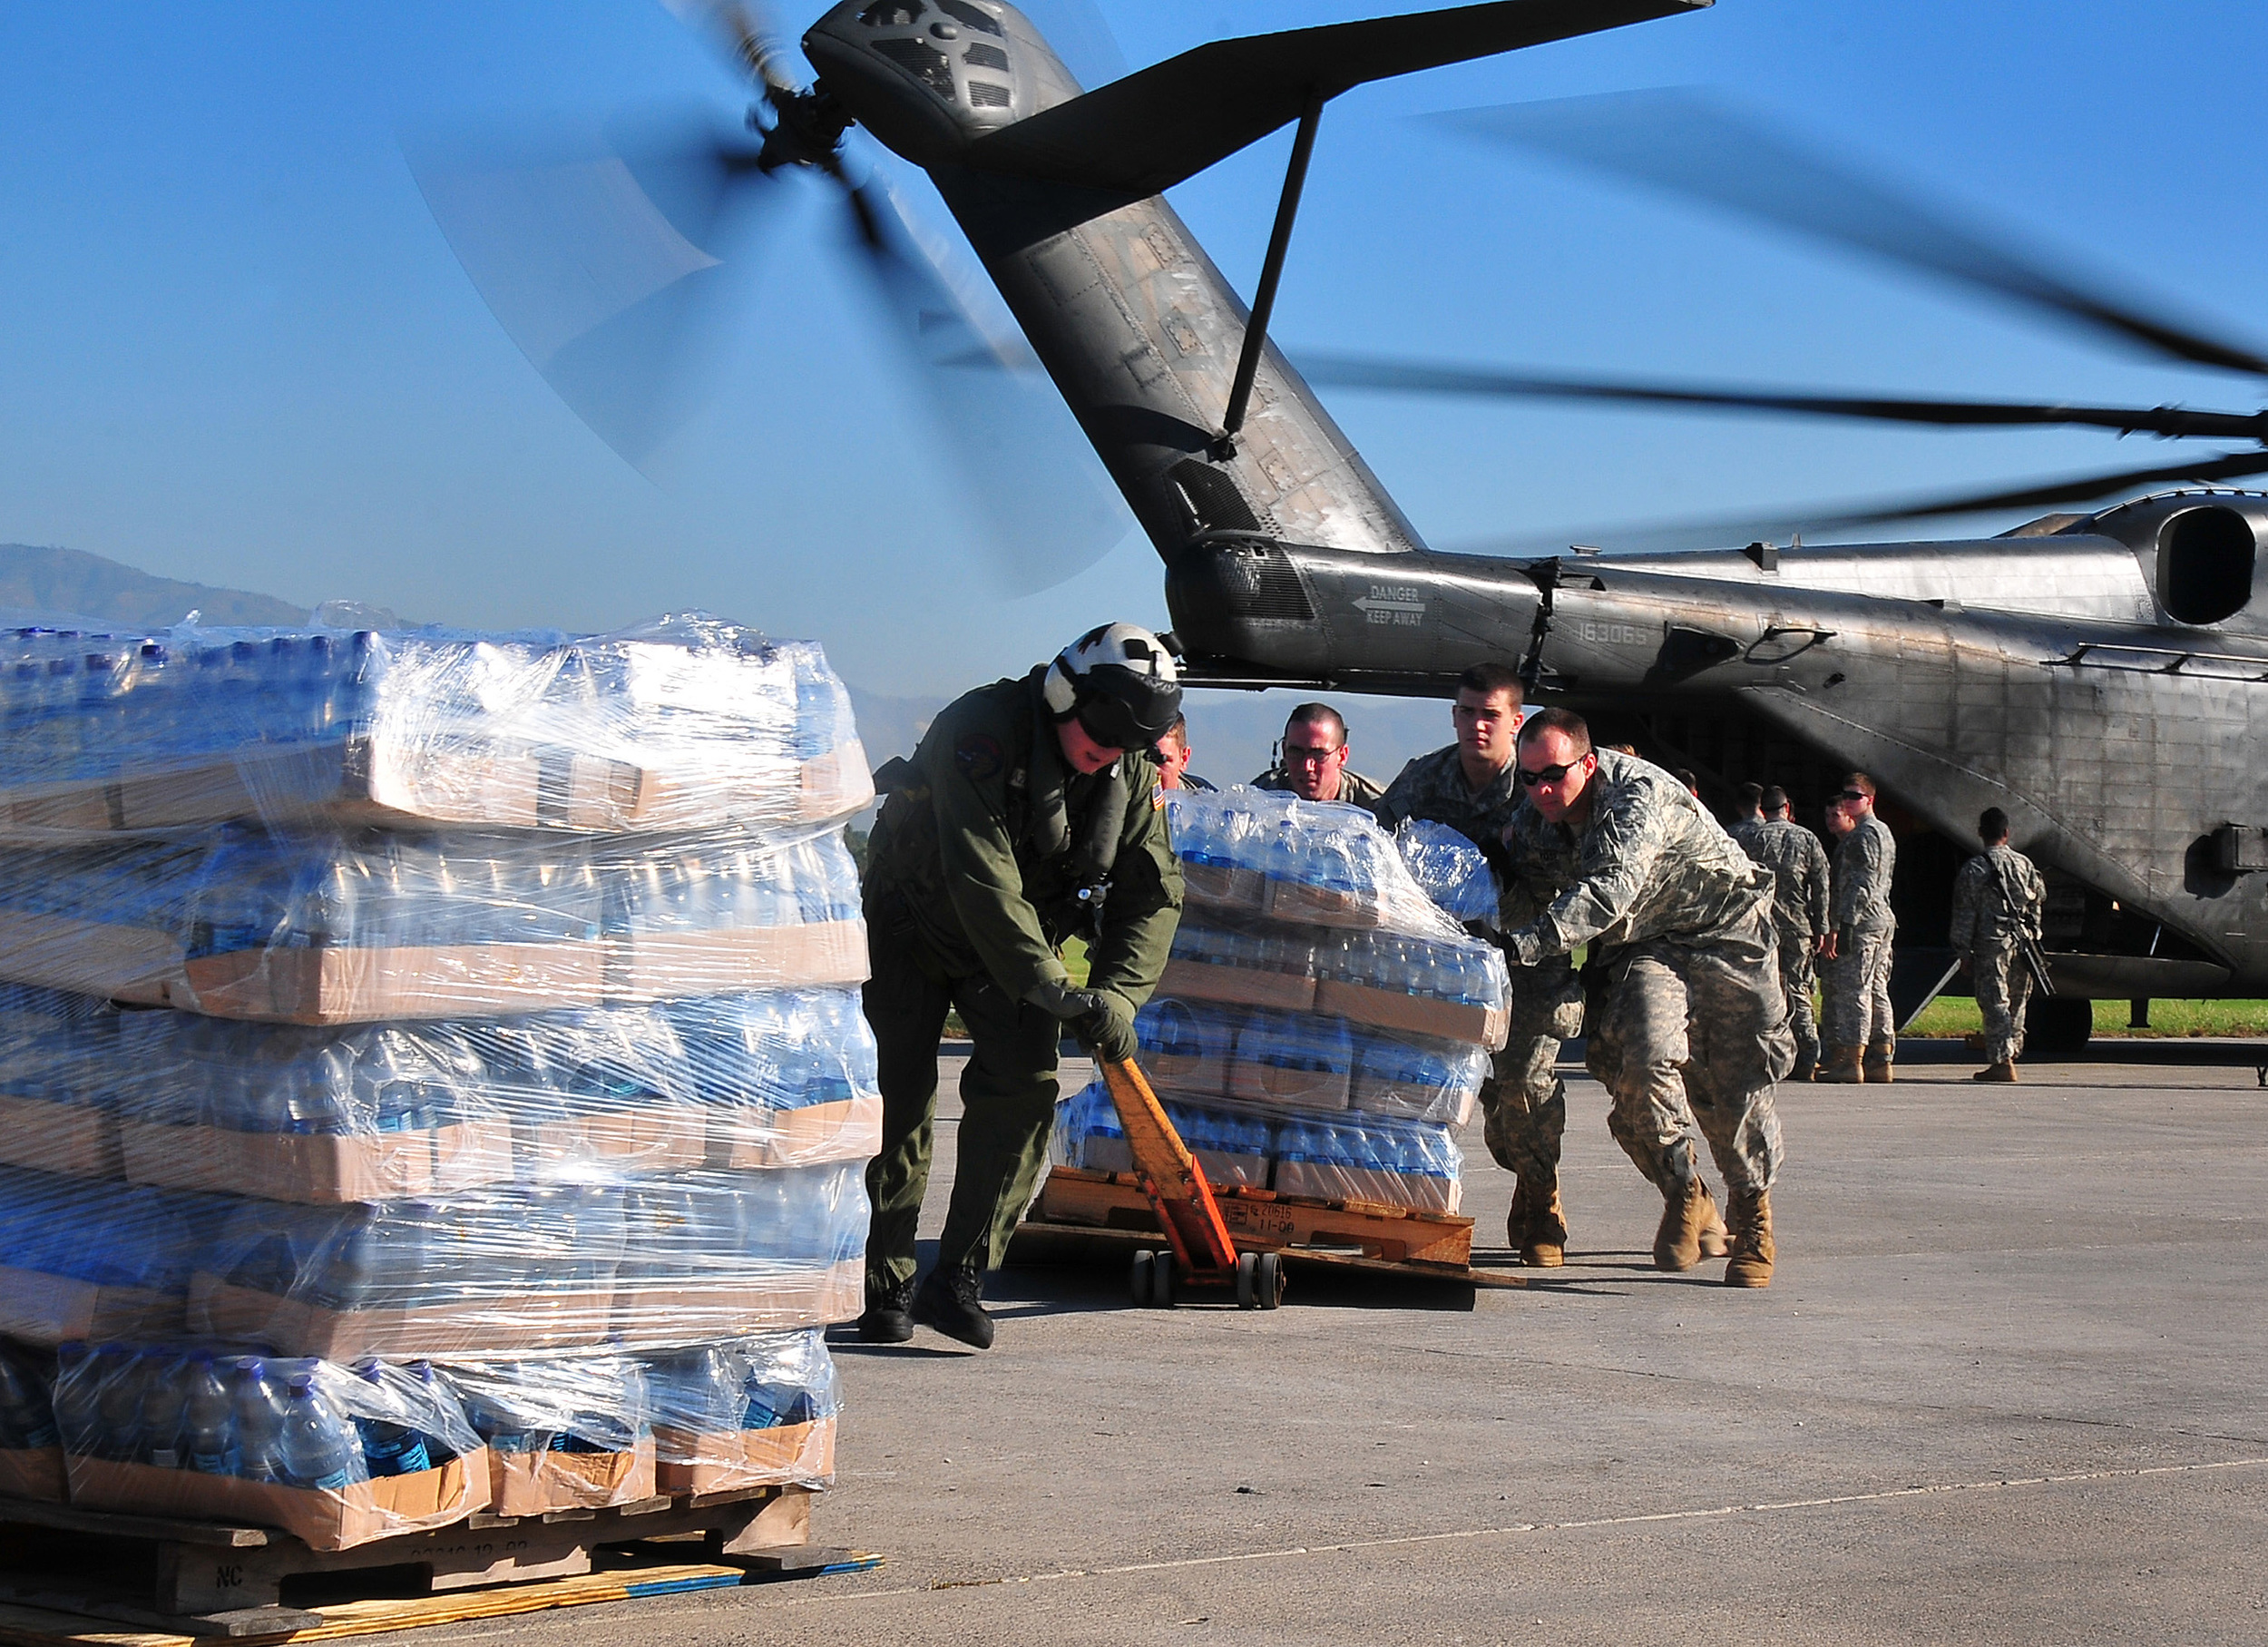 U.S. Army soldiers help the crew of a U.S. Navy MH-53E Sea Dragon helicopter from the aircraft carrier USS Carl Vinson (CVN 70) unload food and supplies at the airport in Port-au-Prince, Haiti.  Daniel Barker, US Navy.